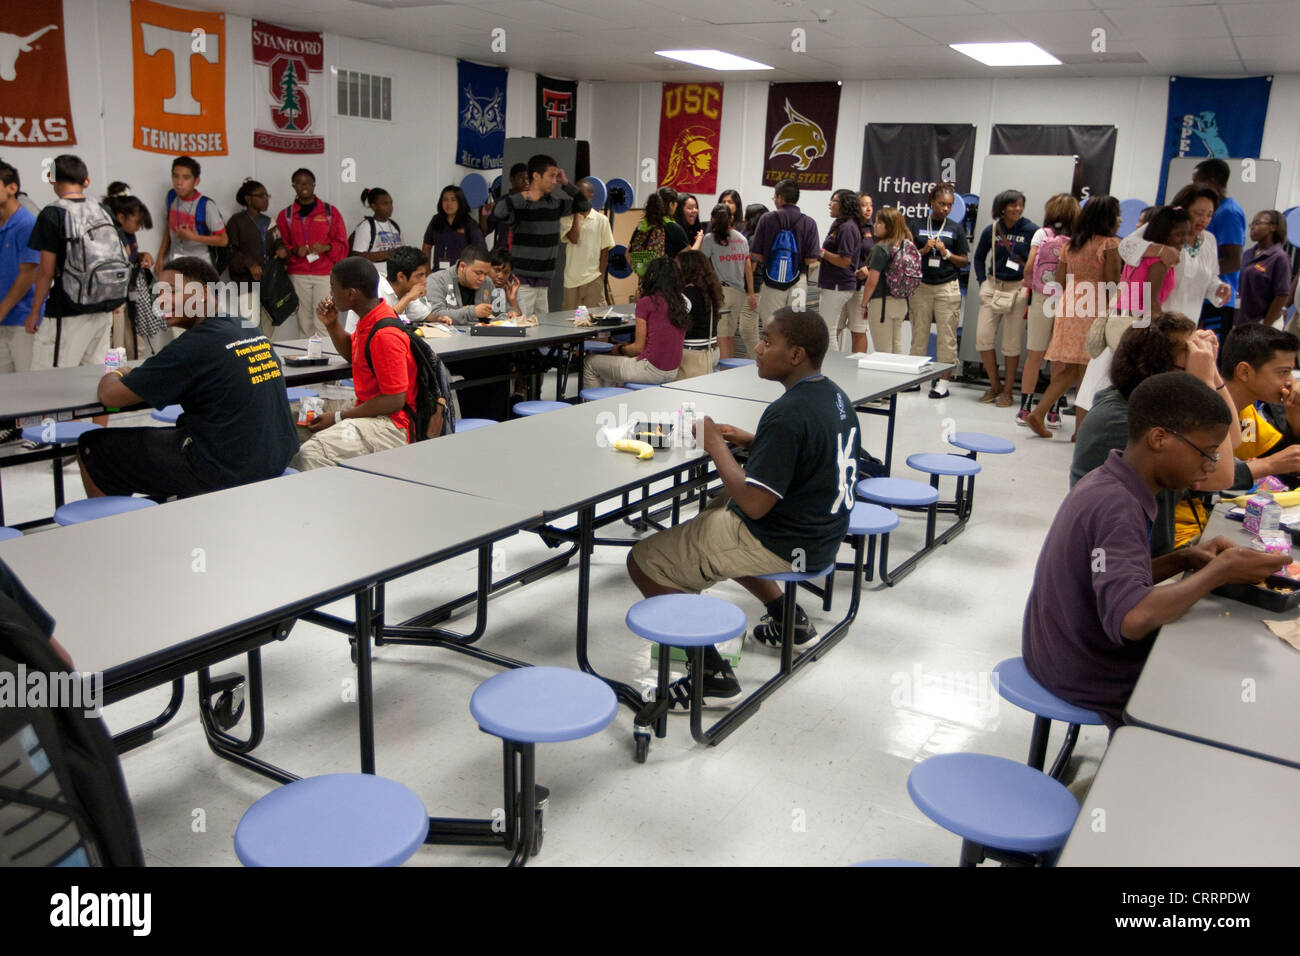 high school lunch table. African-American Male Student Sits Alone At Table During Lunch In Cafeteria Of Public Charter High School